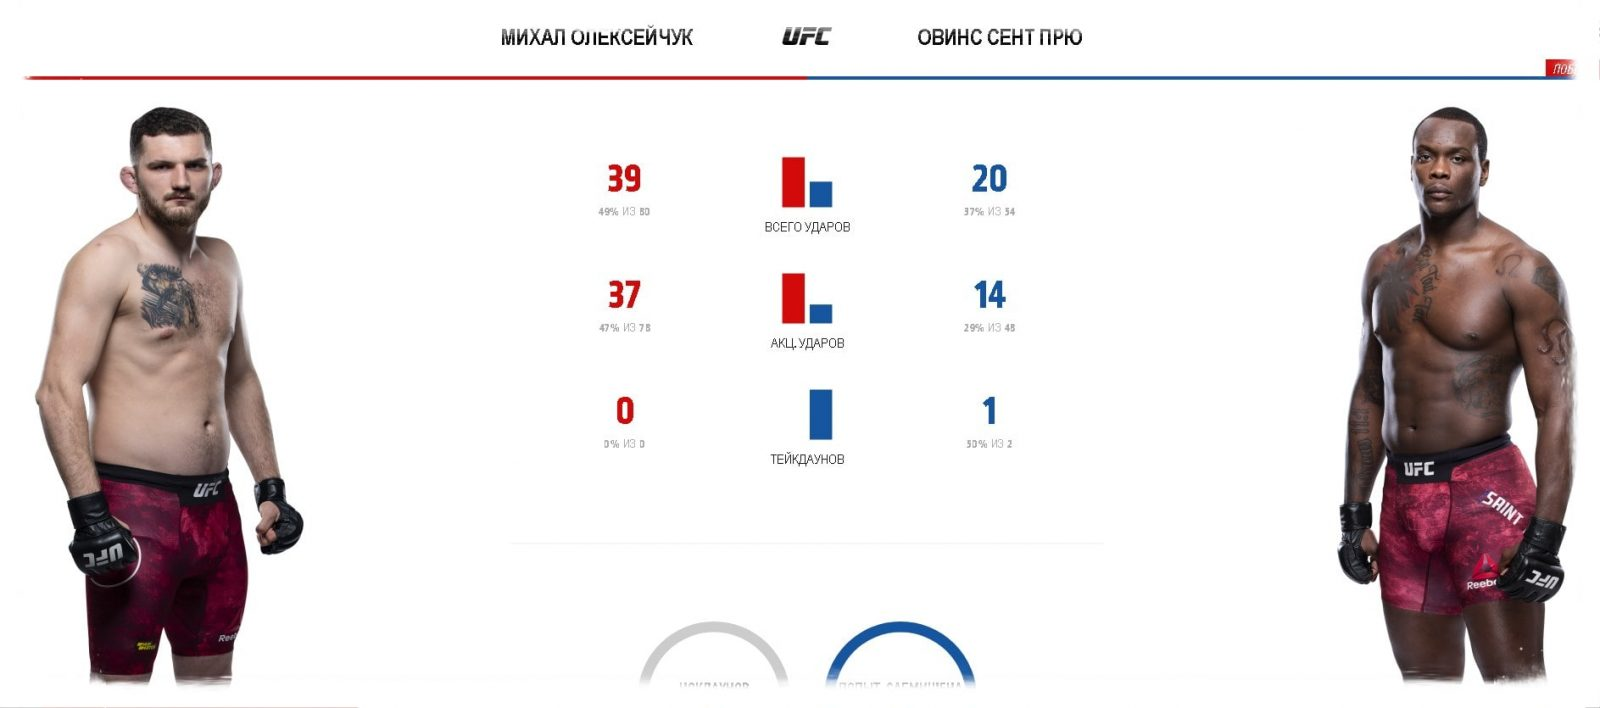 video-boya-ovins-sent-pryu-mihal-oleksejchuk-ufc-fight-night-160